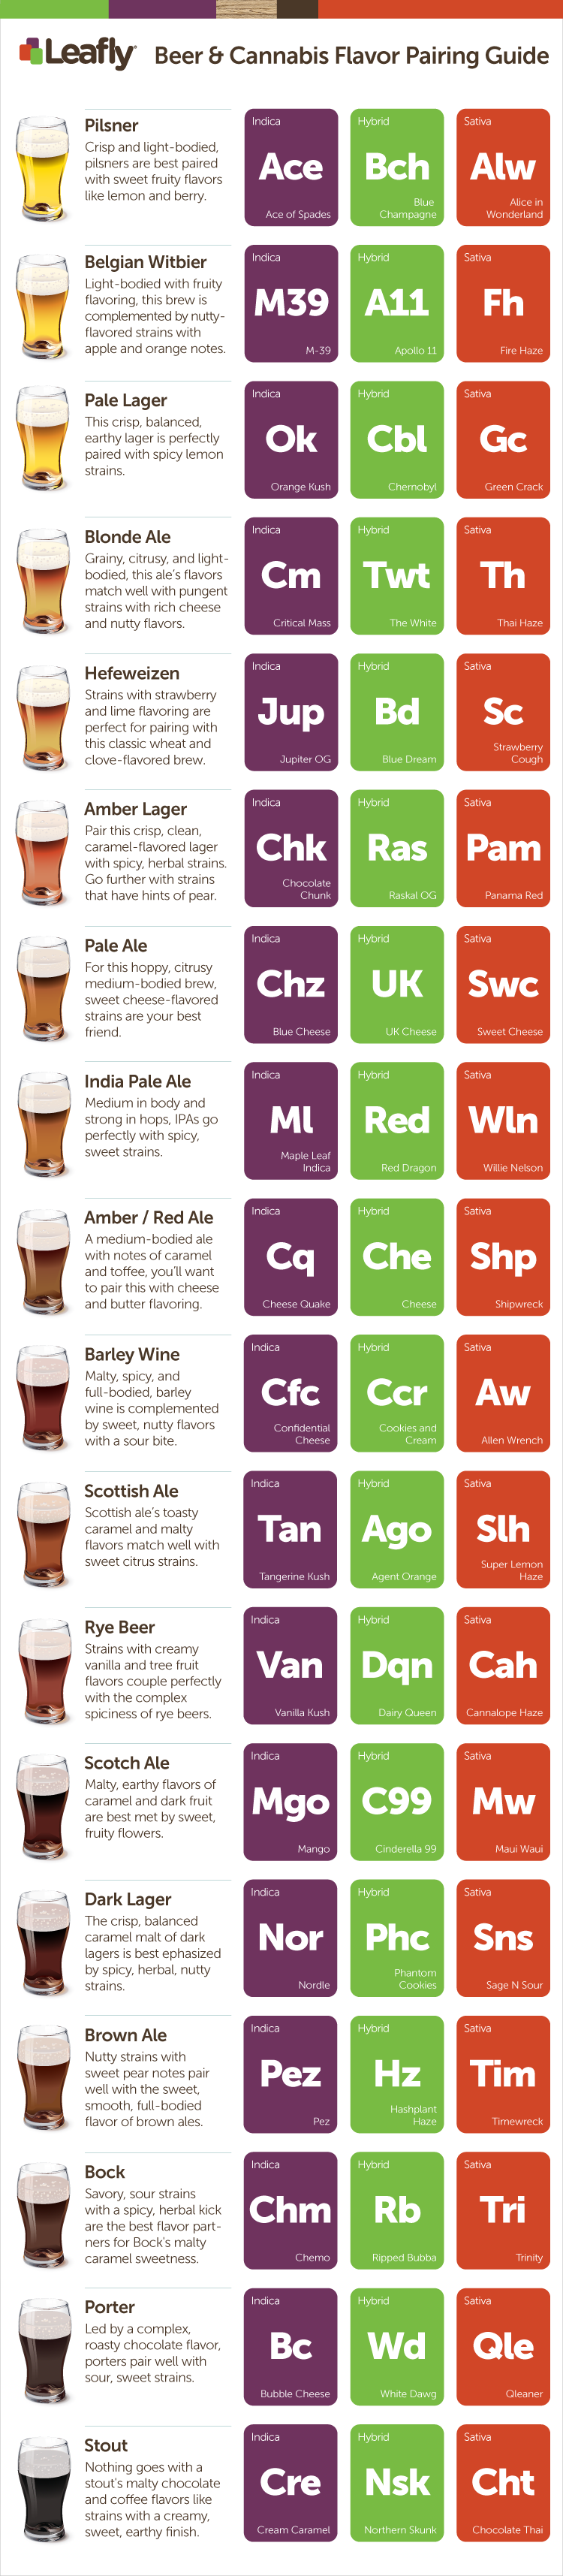 The Leafly Beer and Cannabis Flavor Pairing Guide Infographic